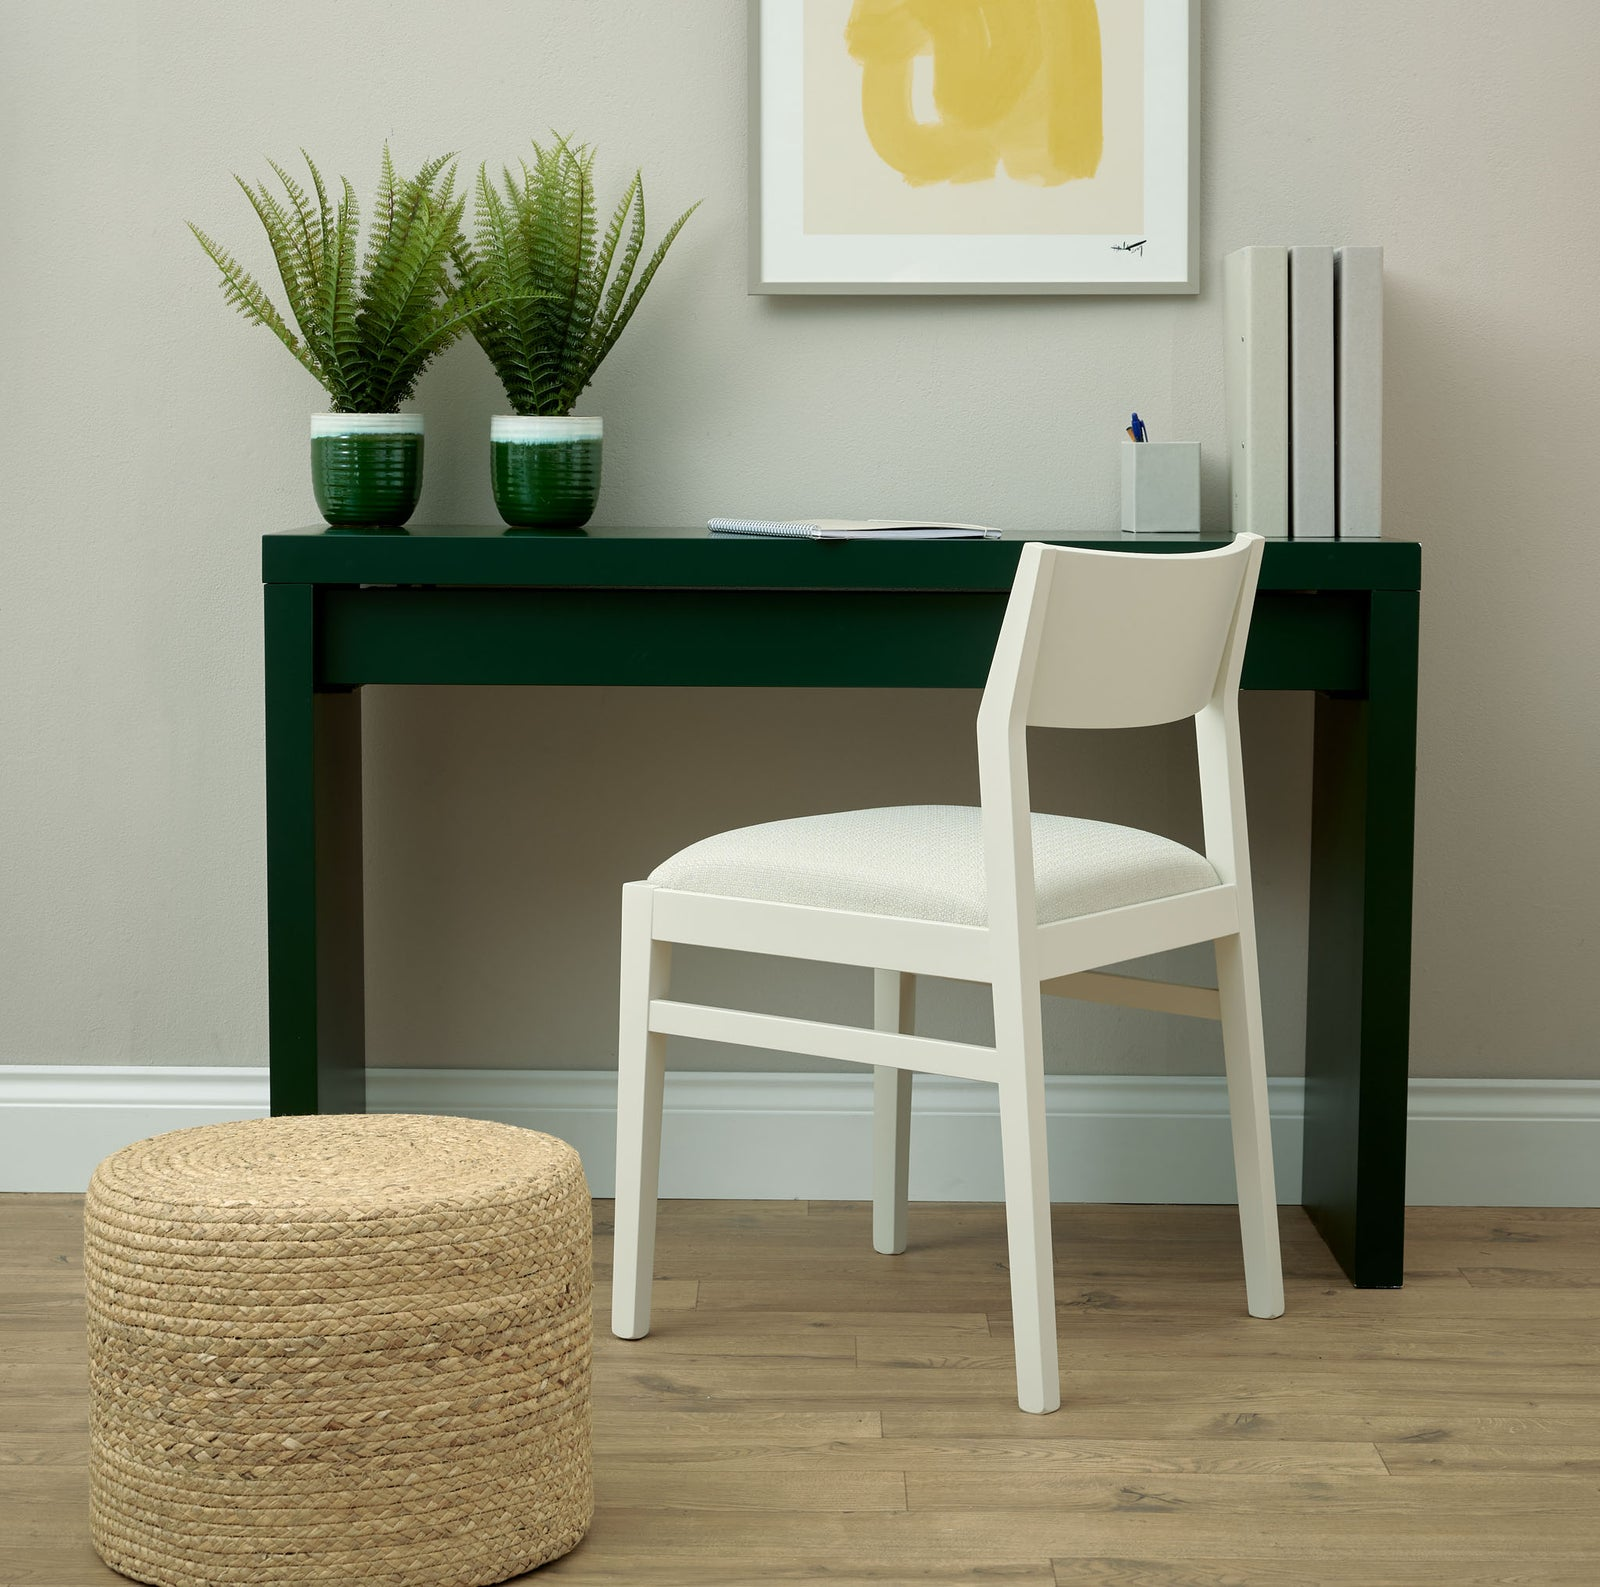 The  Stylish James Chair in the superb Scribble from Warwick